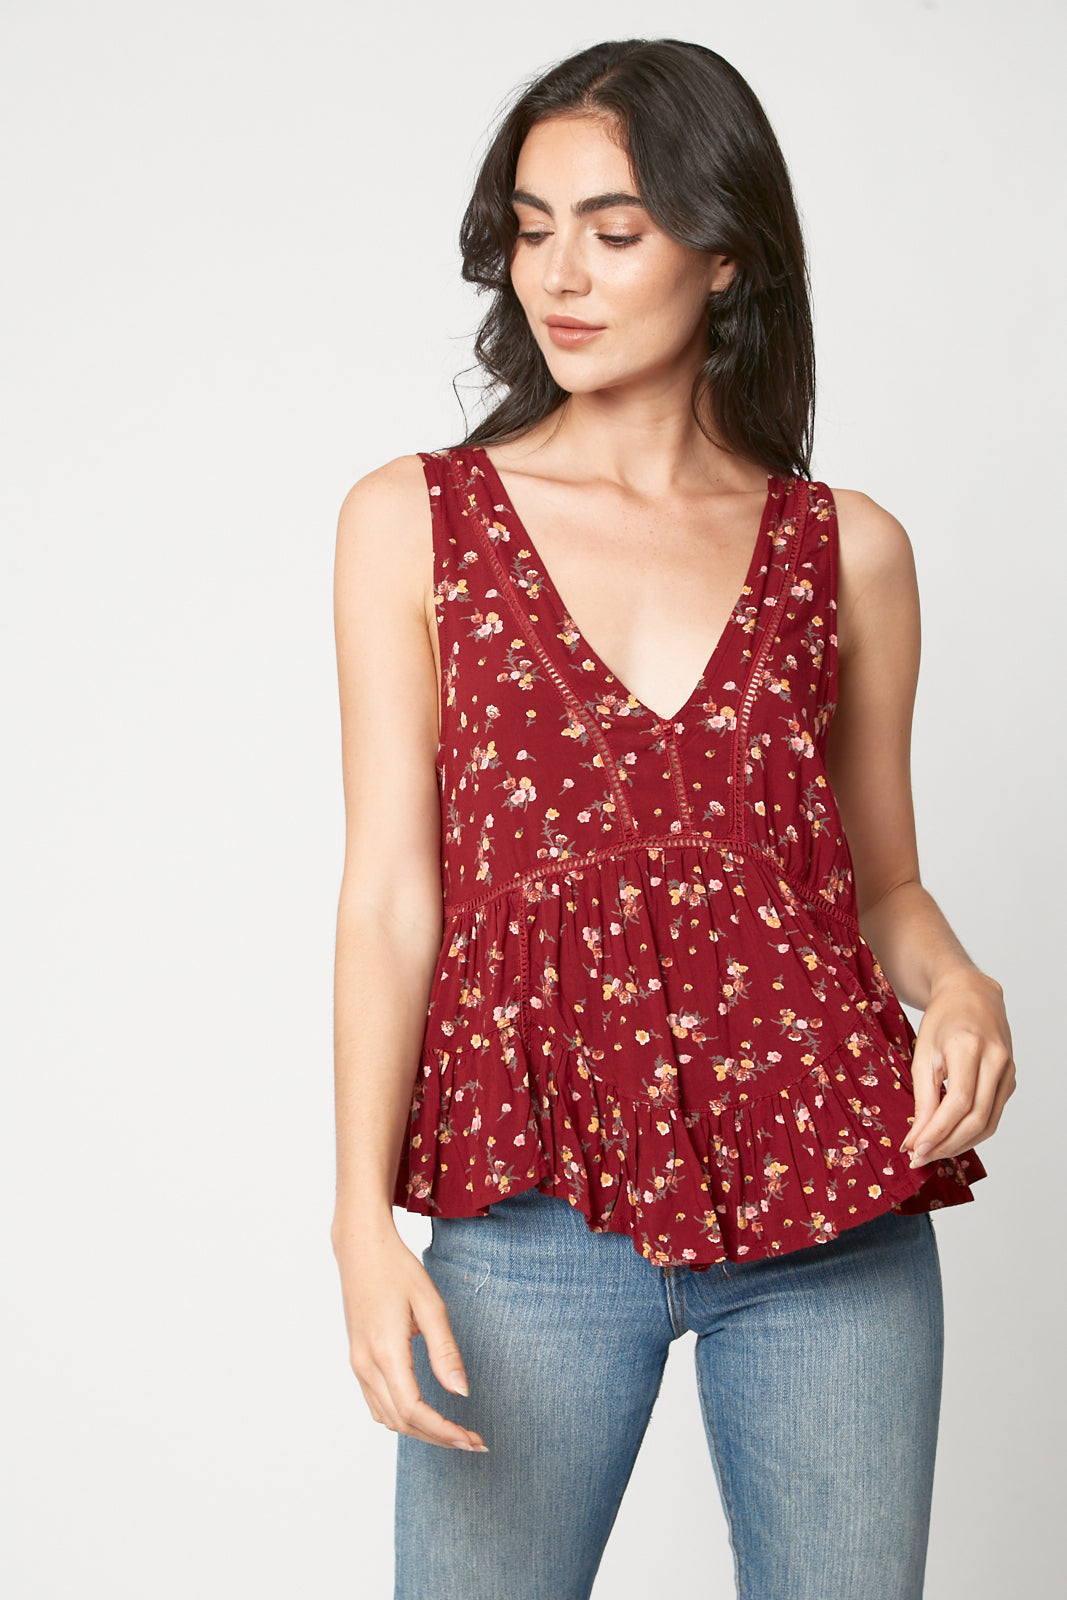 Tarantella Top